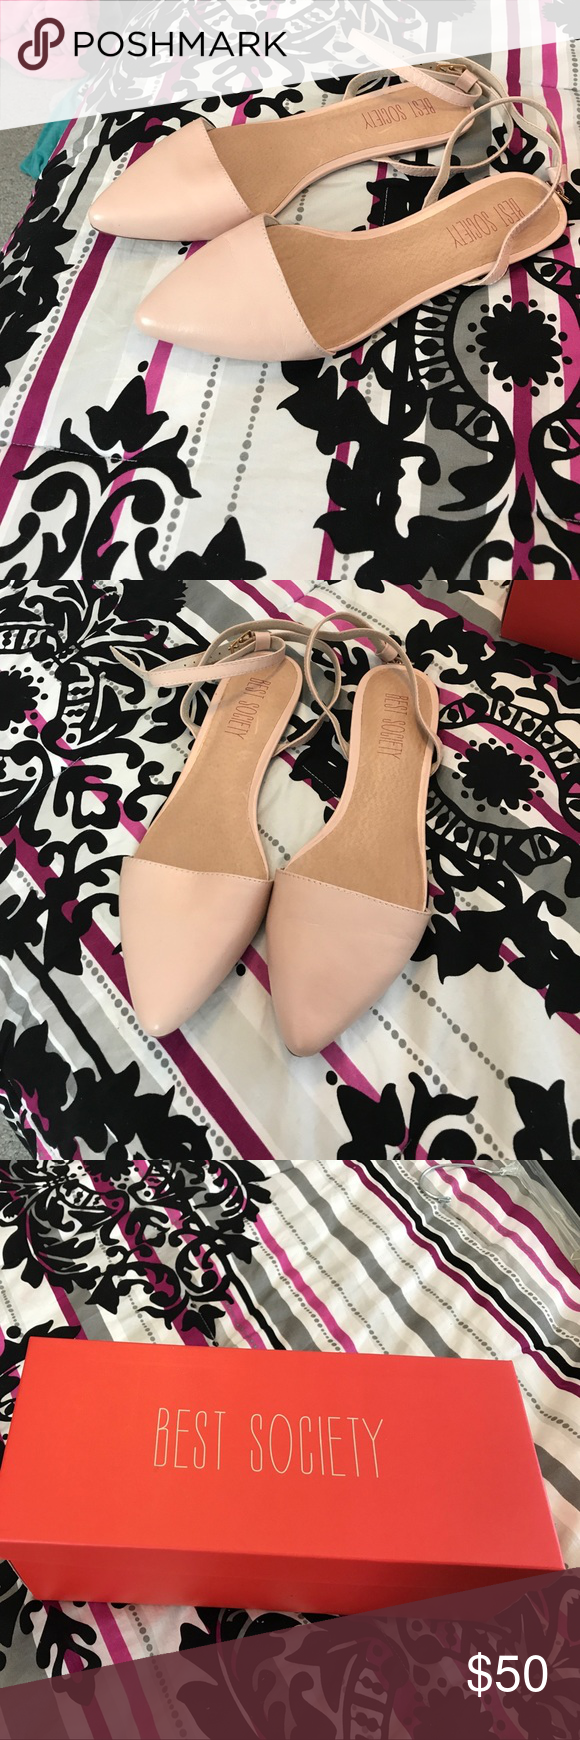 Best Society Gracie Open Back Flat - Size 8.5 Beautiful Baby Pink Open Back Flat. Strap around the ankles adjustable. Never worn. New in box. Perfect for spring and summer. Best Society Shoes Flats & Loafers